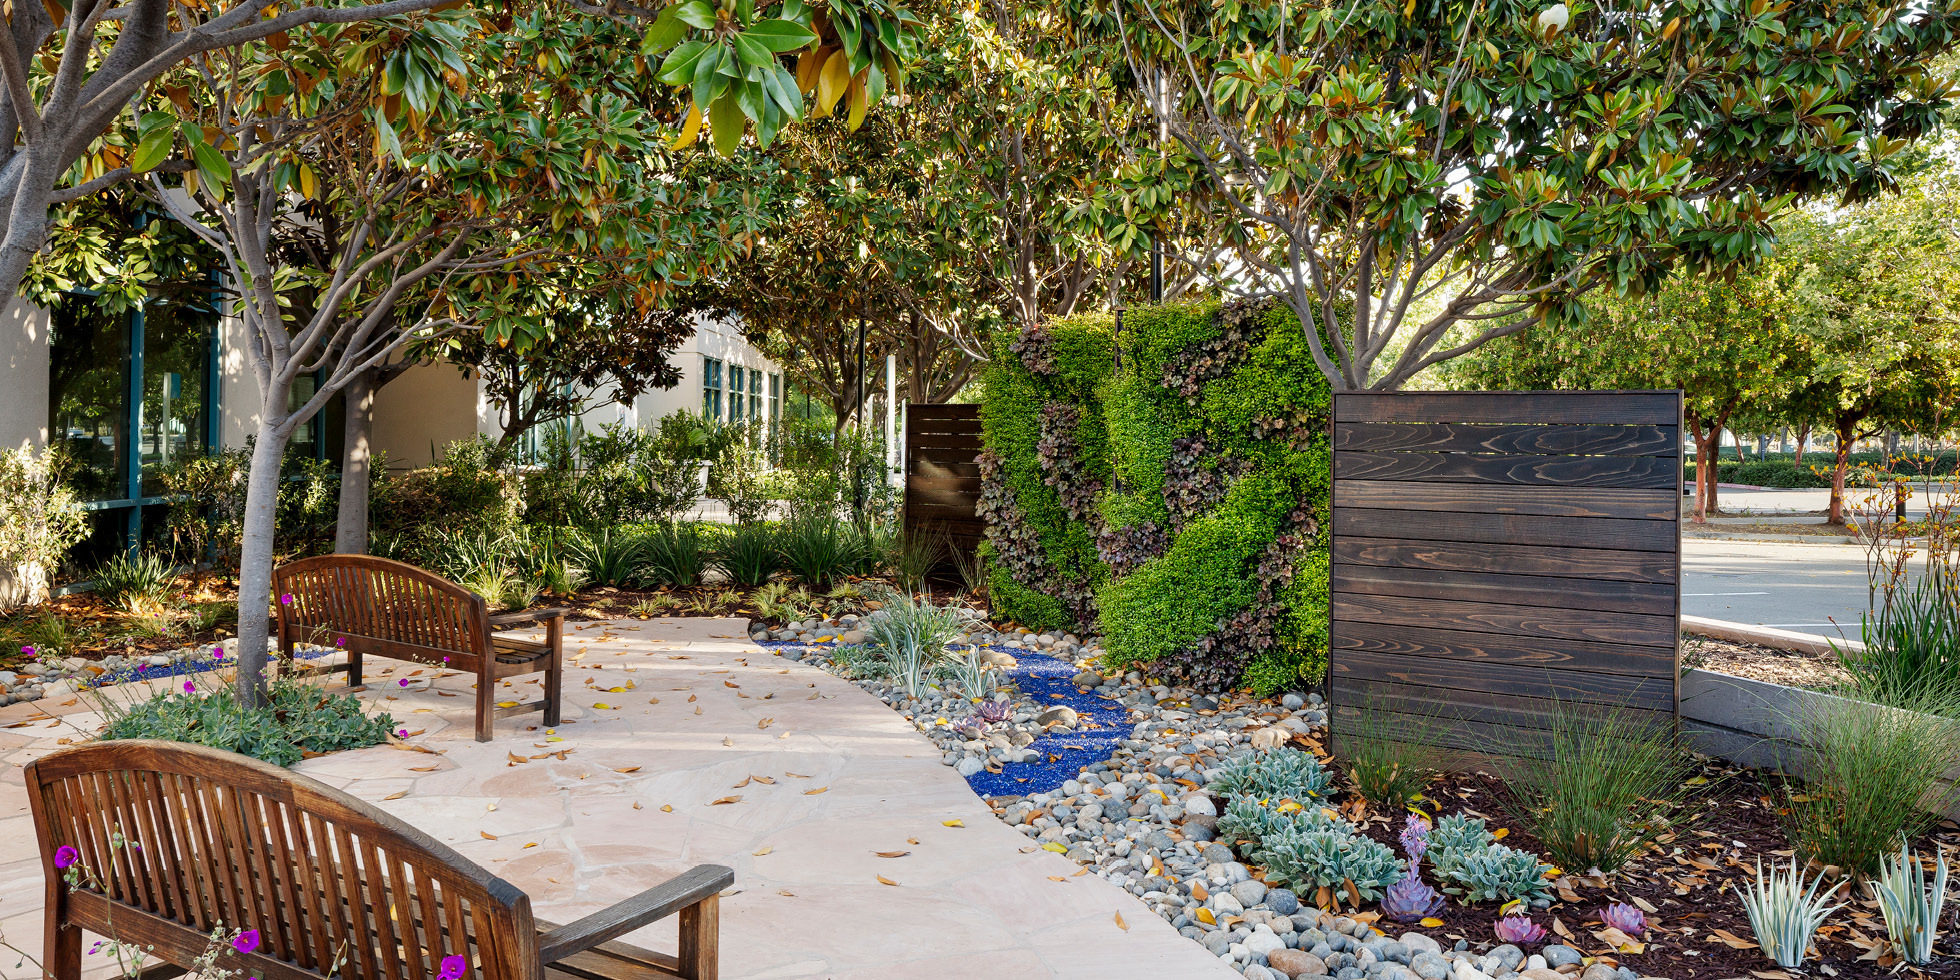 Cisco Reflection Garden Living Wall by Habitat Horticulture - View 1